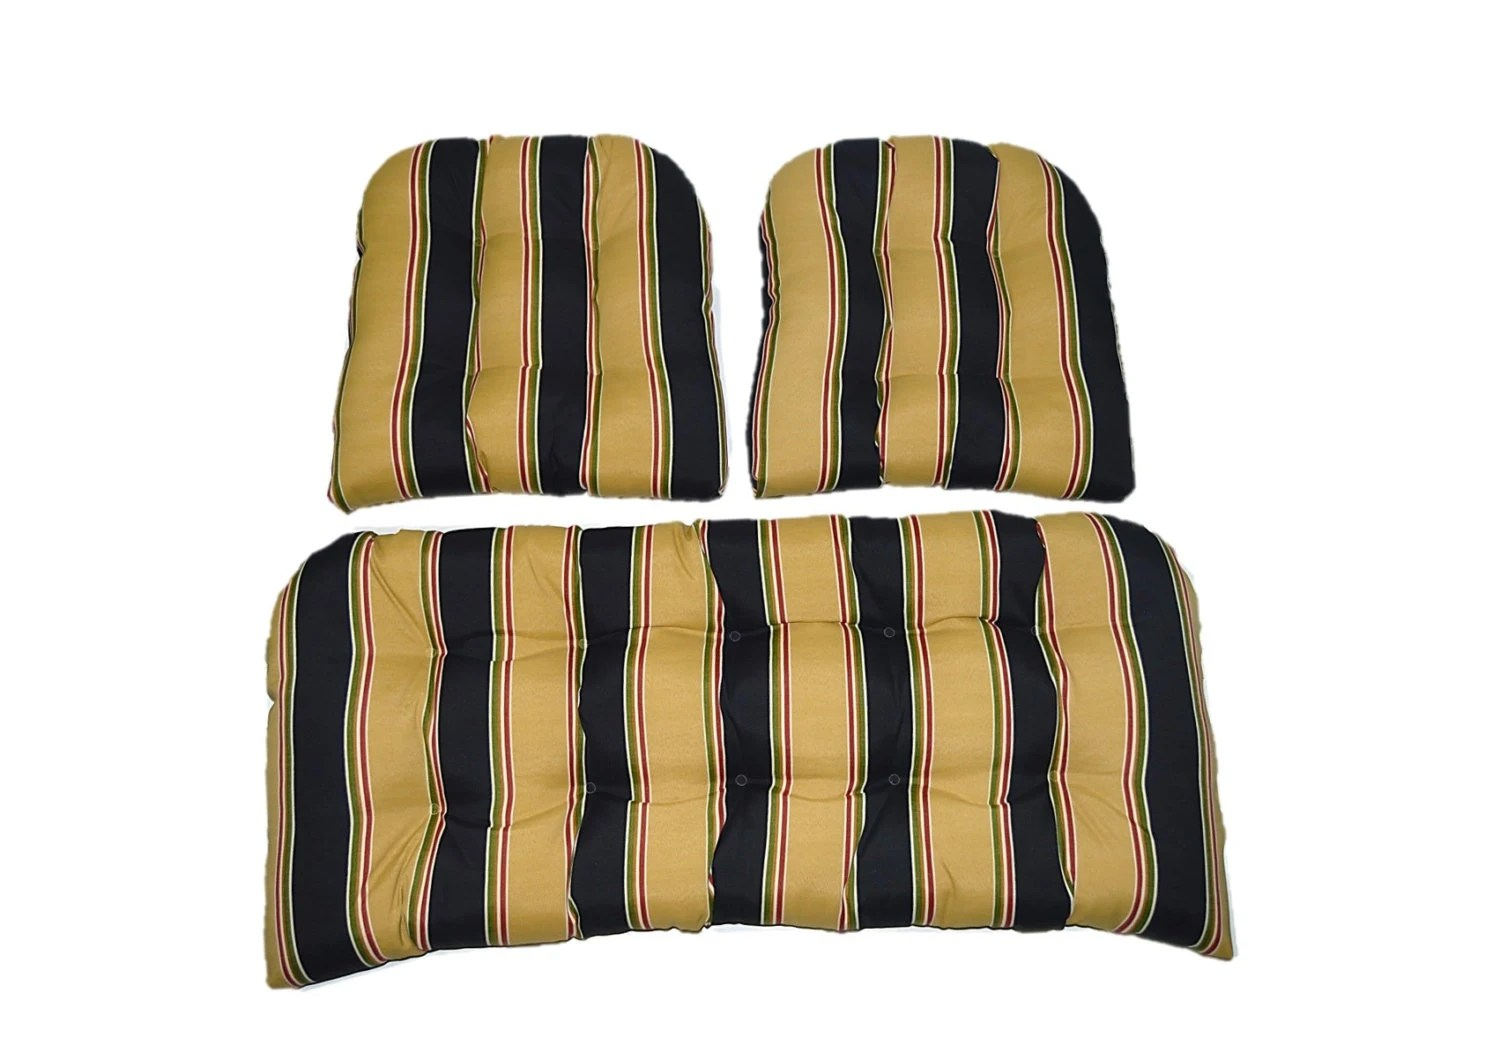 In / Outdoor Wicker Cushion 3 Pc. Set Black Tan Red Green